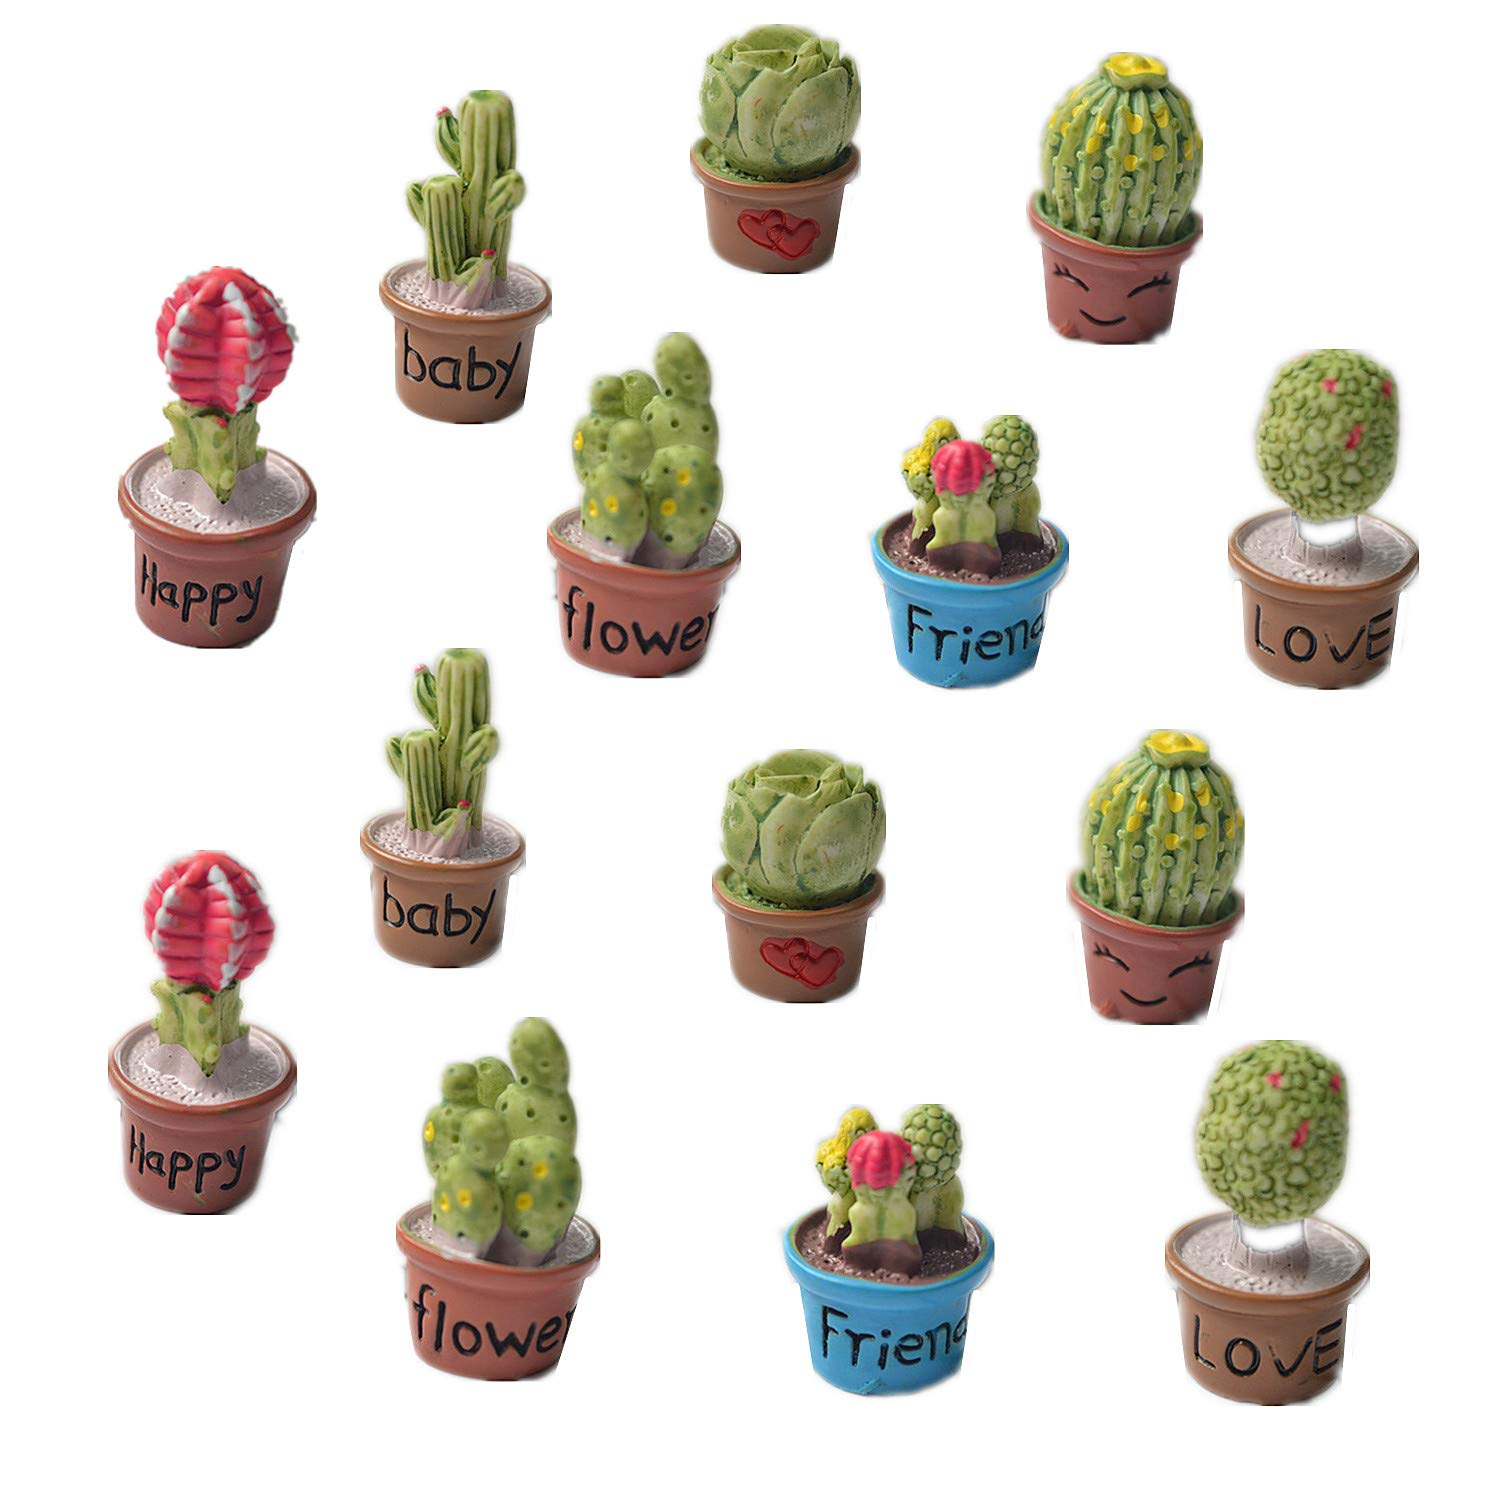 Zhiheng Set of 14 Cactus Flower Pot Succulent Plants Mini Garden Fairy Garden Kits Miniature Ornament Accessories Set for Dollhouse Supplies Scrapbooking DIY Outdoor Decorations Home Decor